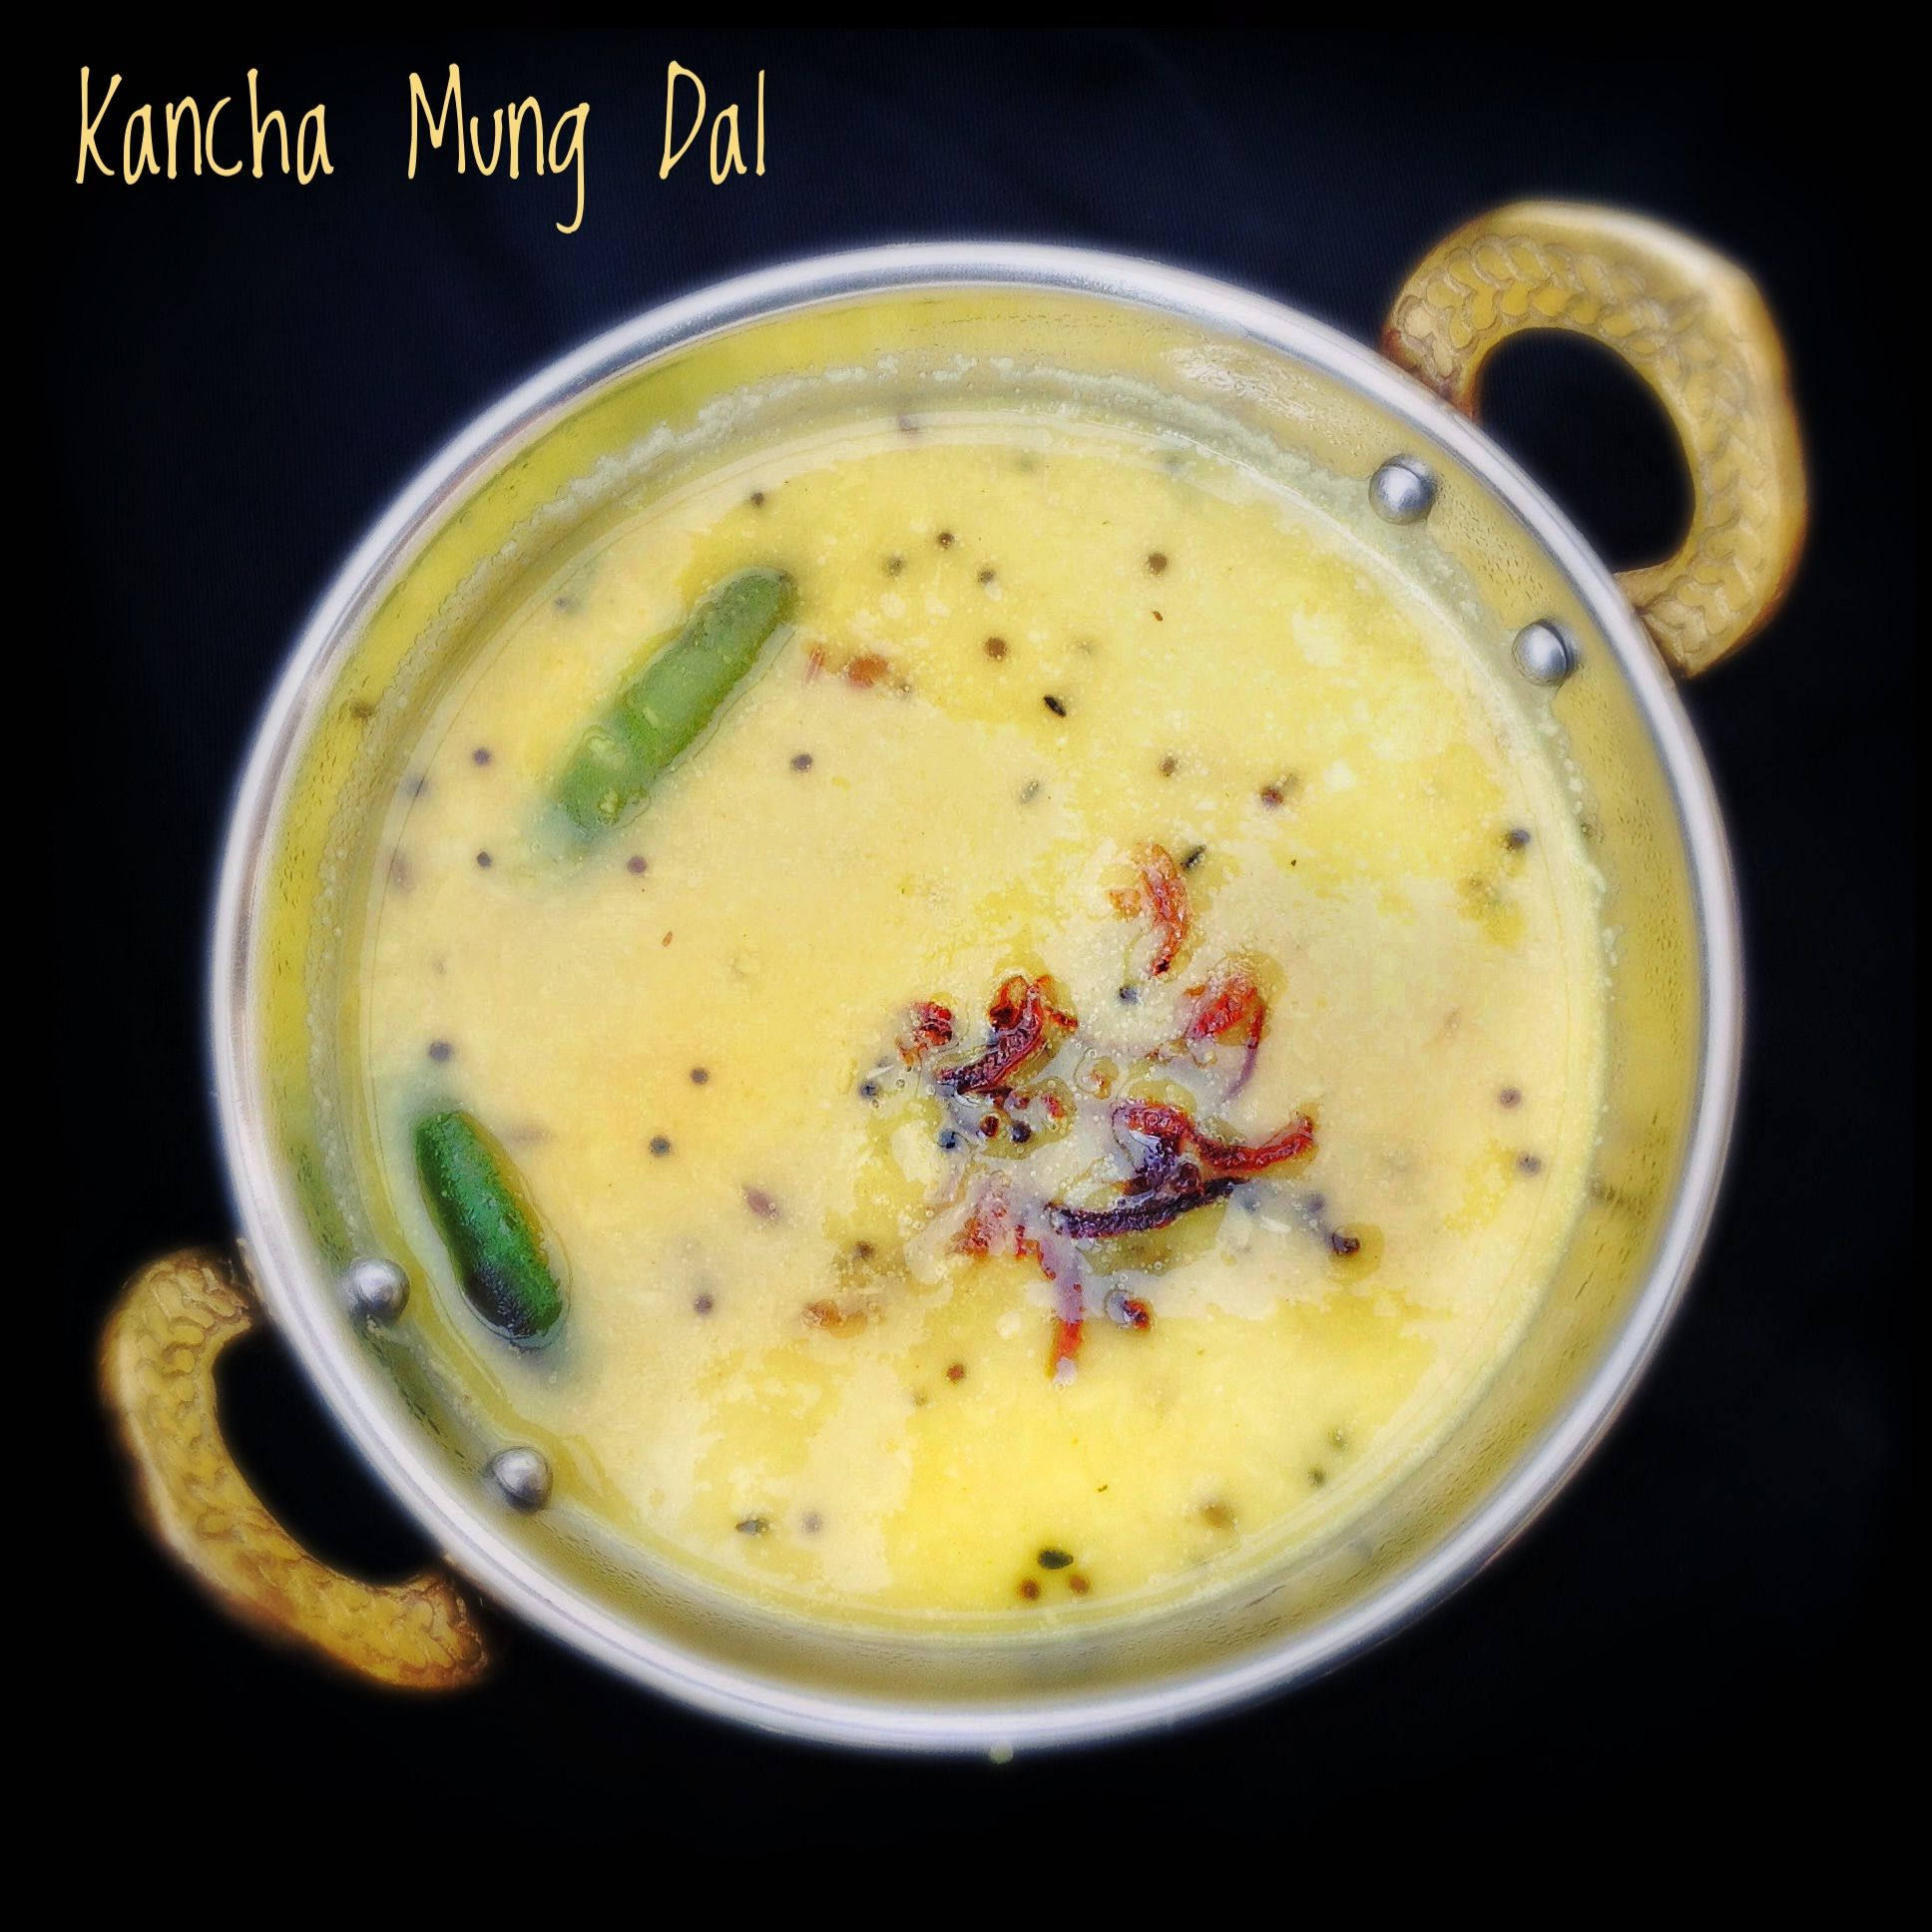 Kancha mung dal indian food recipes recipe community and dishes foods forumfinder Choice Image